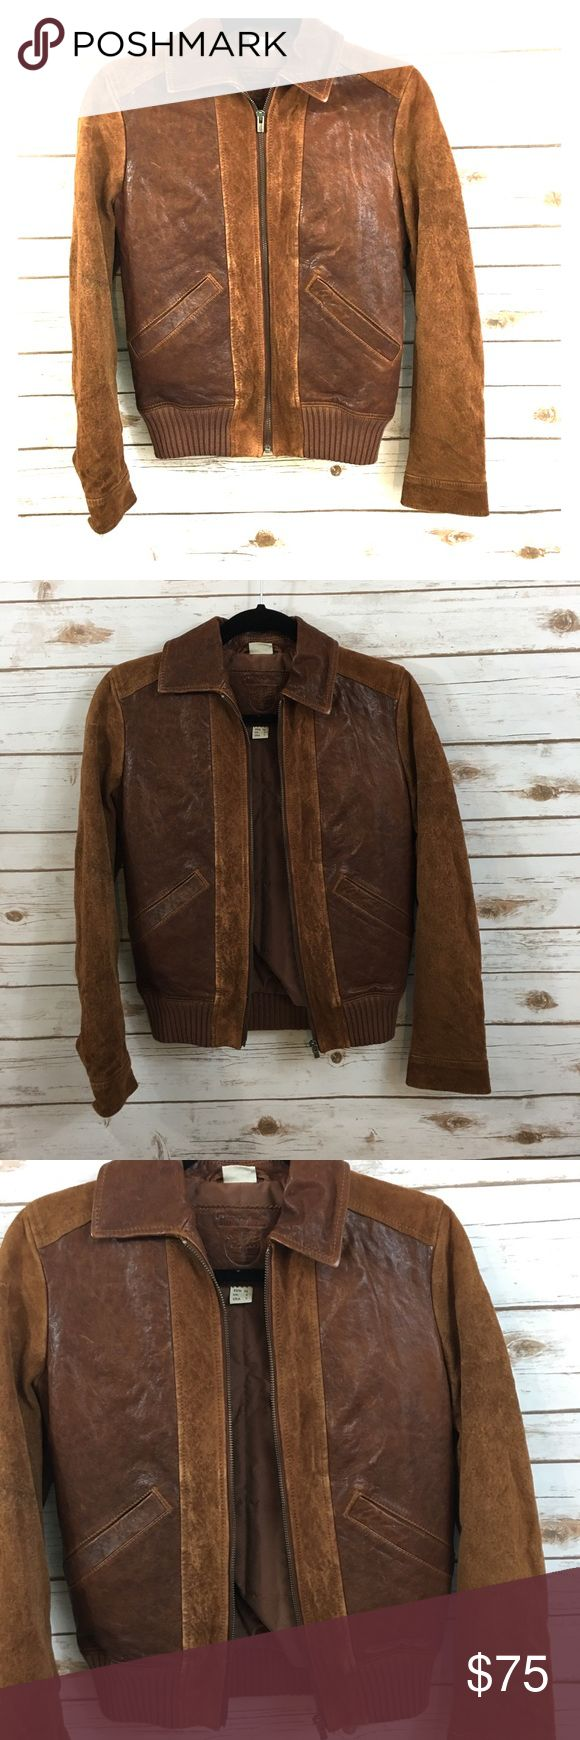 Womens Timberland Jacket Women's Timberland Brown Bomber Lambskin Jacket. US Size 2. This is a well made jacket with very soft, supple leather. Timberland Jackets & Coats